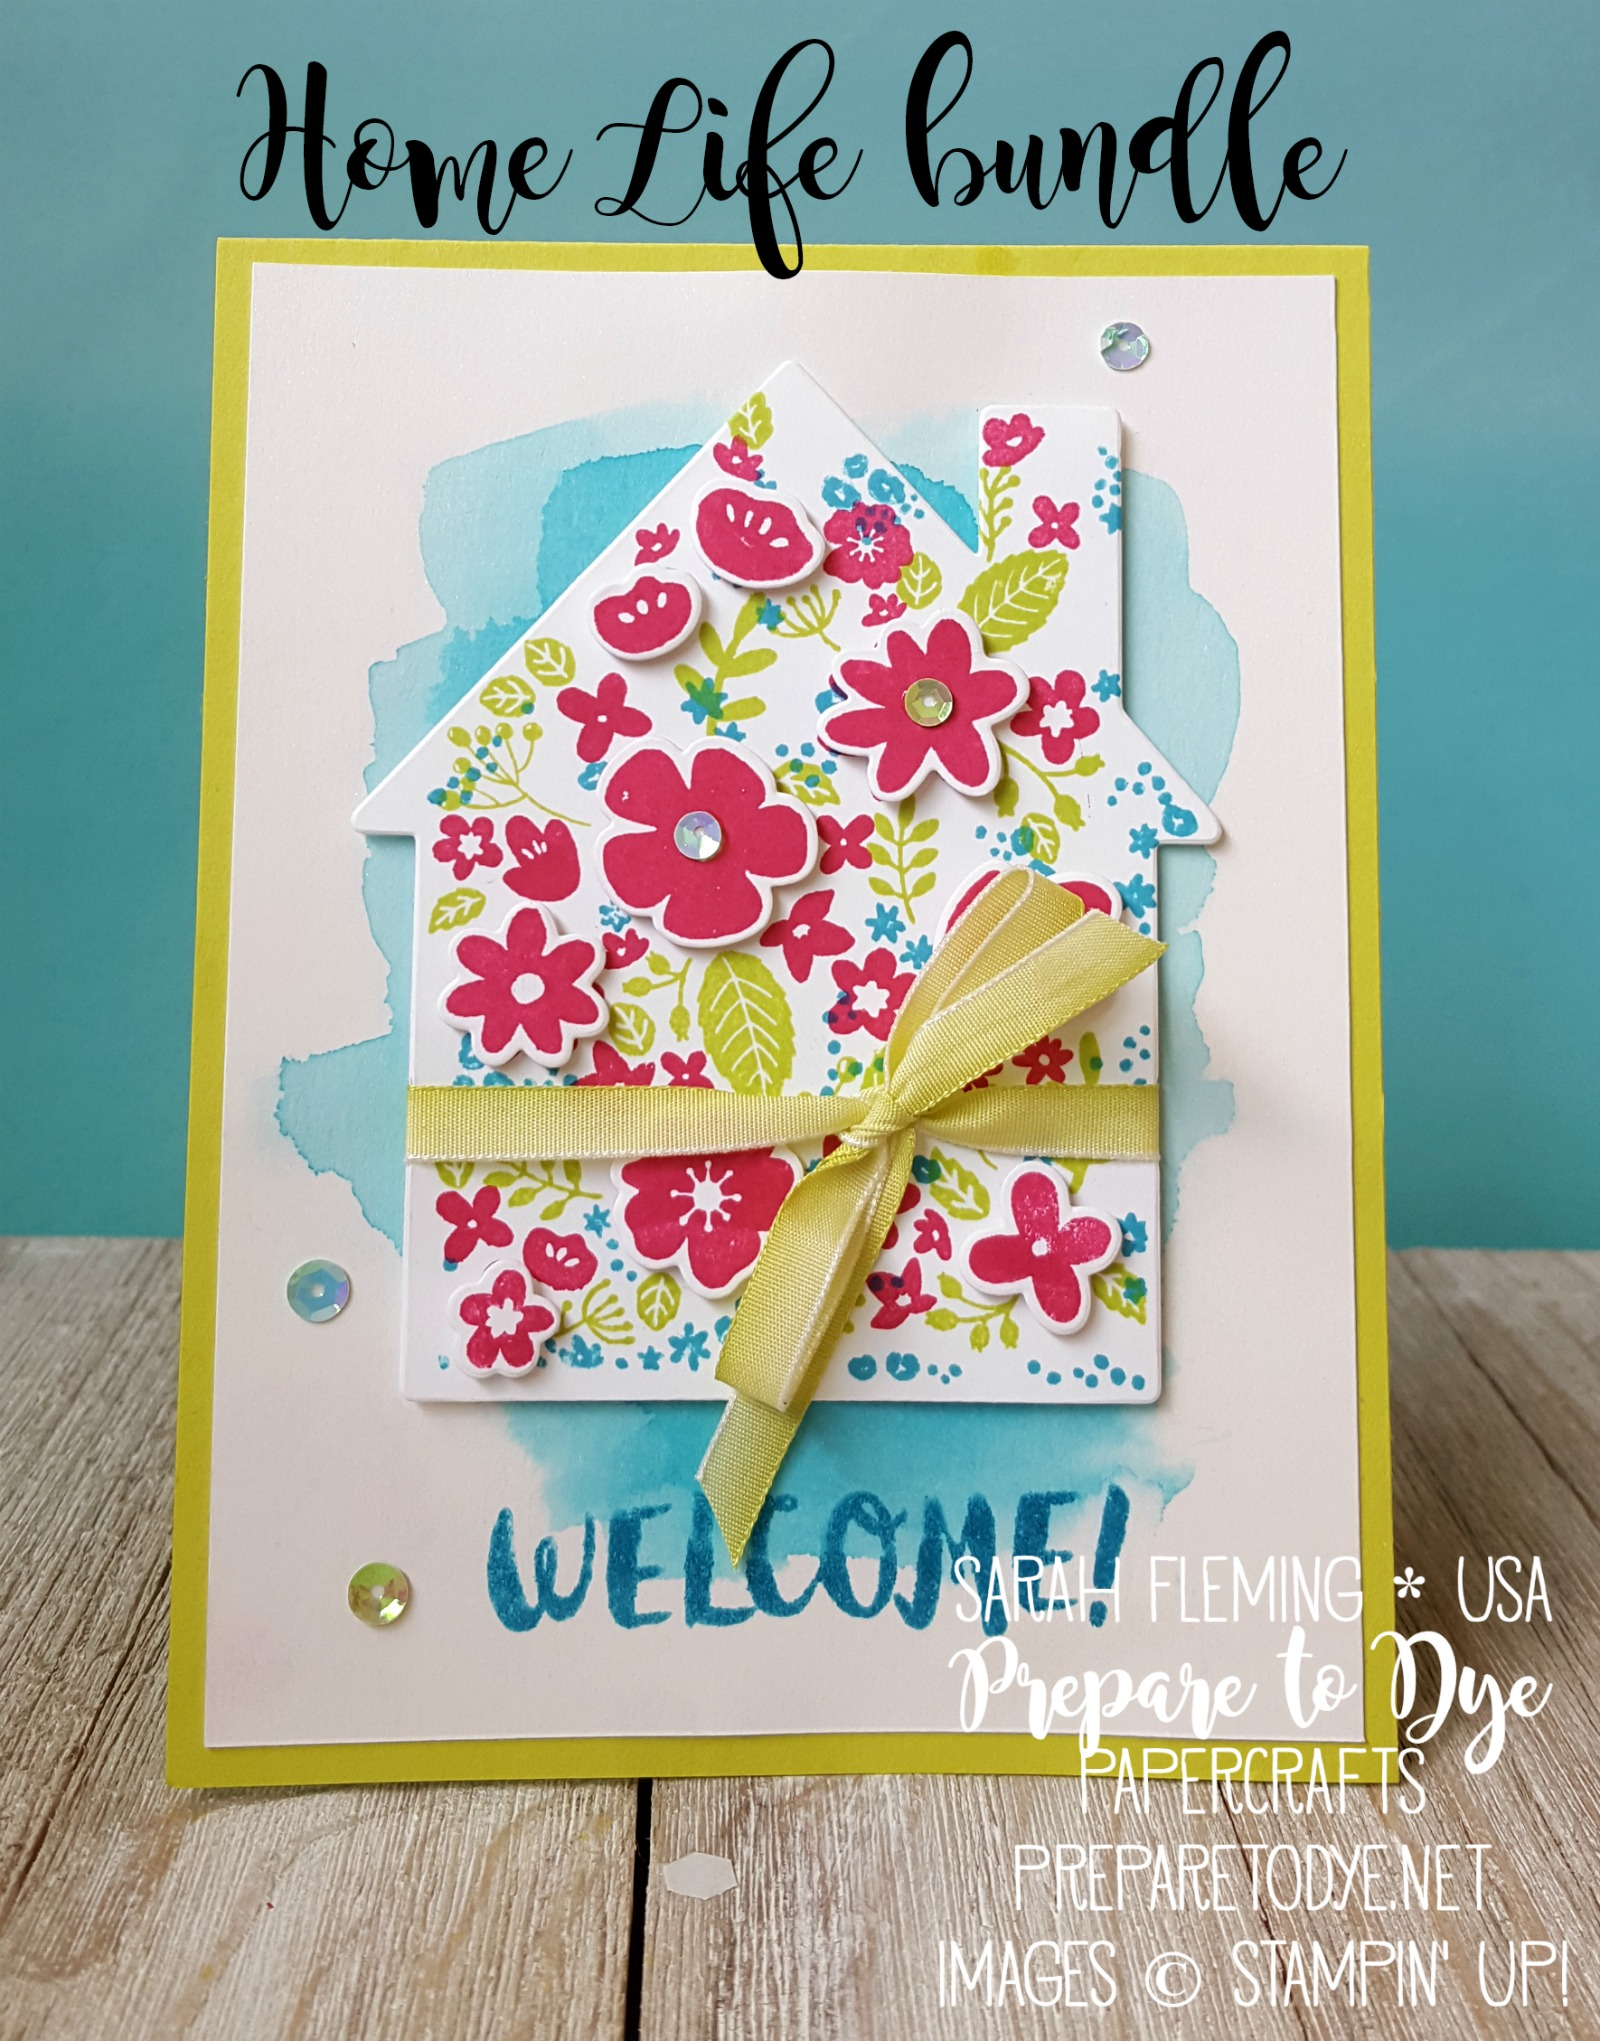 Stampin' Up! Home Life bundle with Welcome Home framelits dies, watercolor wash, Lemon-Lime Twist Ombre Ribbon - Sarah Fleming - Prepare to Dye Papercrafts